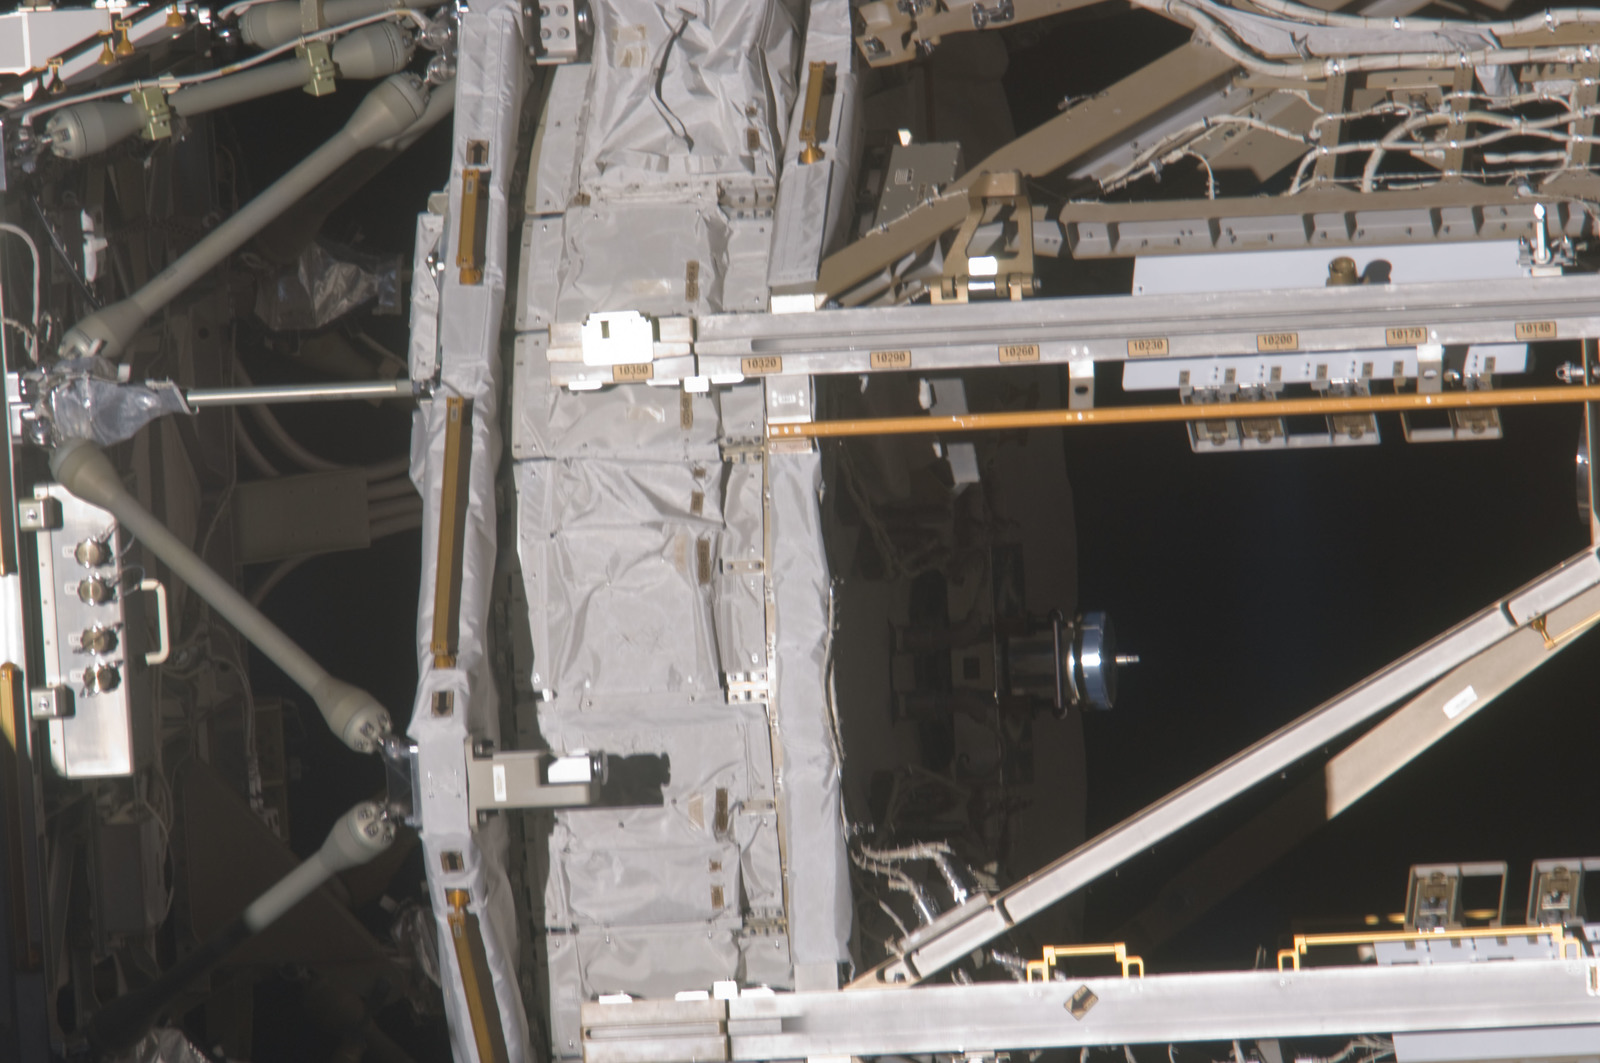 S134E010556 - STS-134 - View of ISS taken during STS-134 Undocking and Flyaround